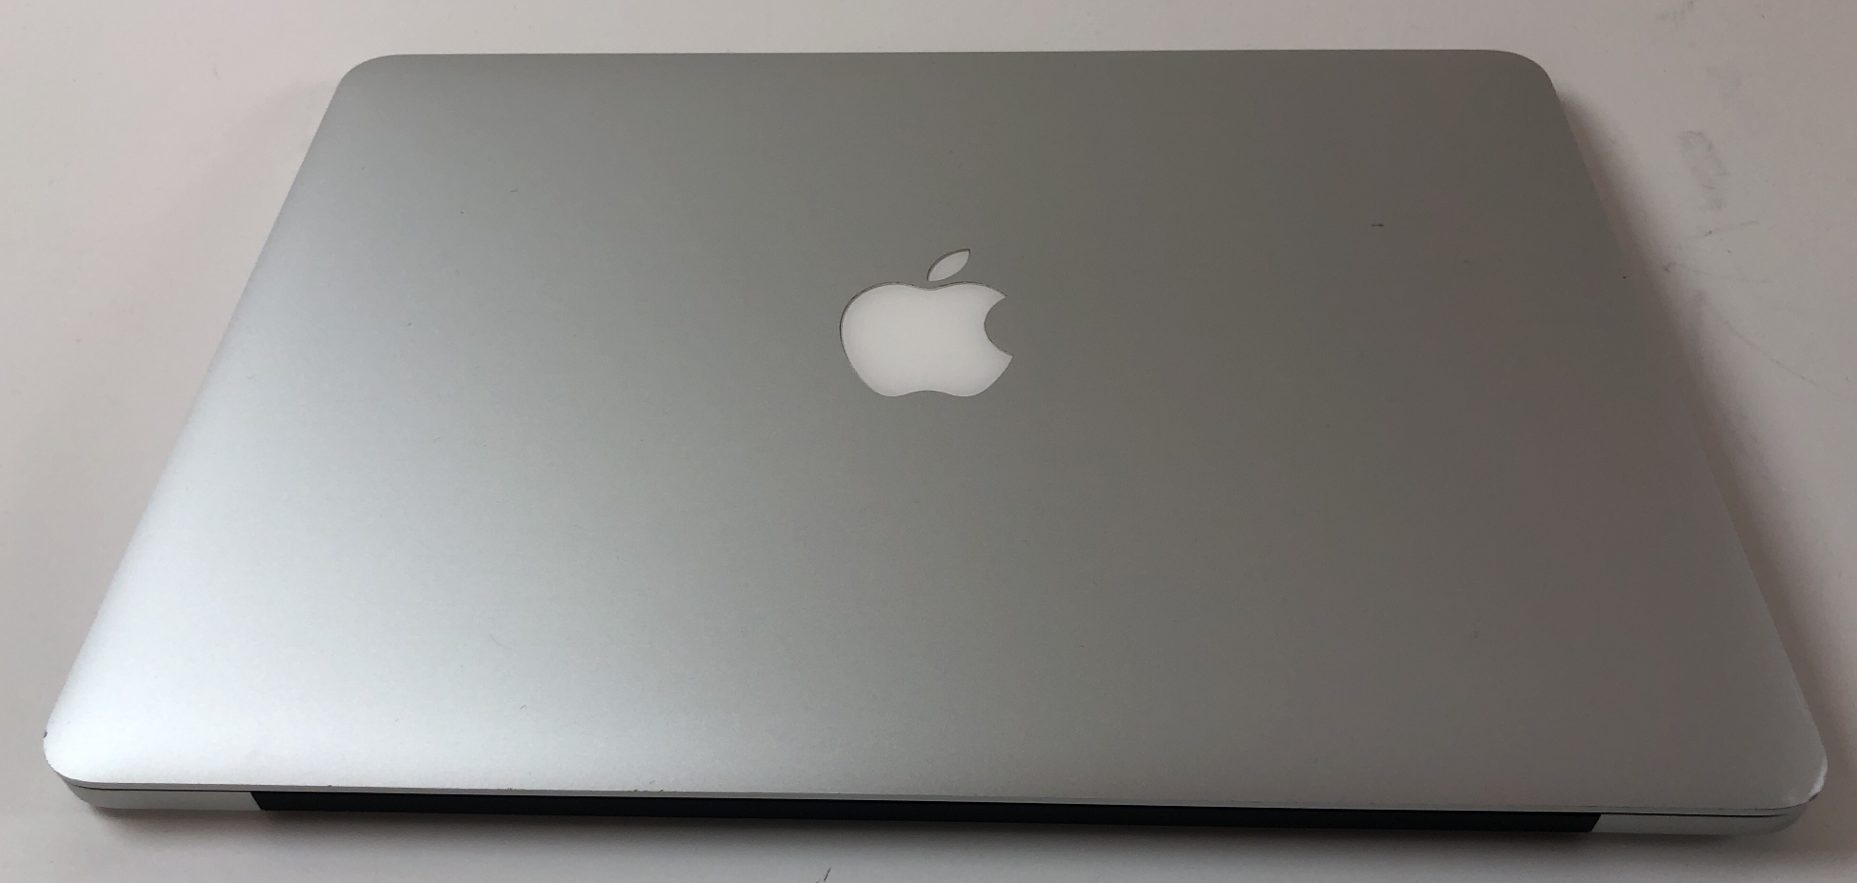 "MacBook Pro Retina 13"" Late 2012 (Intel Core i5 2.5 GHz 8 GB RAM 512 GB SSD), Intel Core i5 2.5 GHz, 8 GB RAM, 512 GB SSD, Kuva 2"